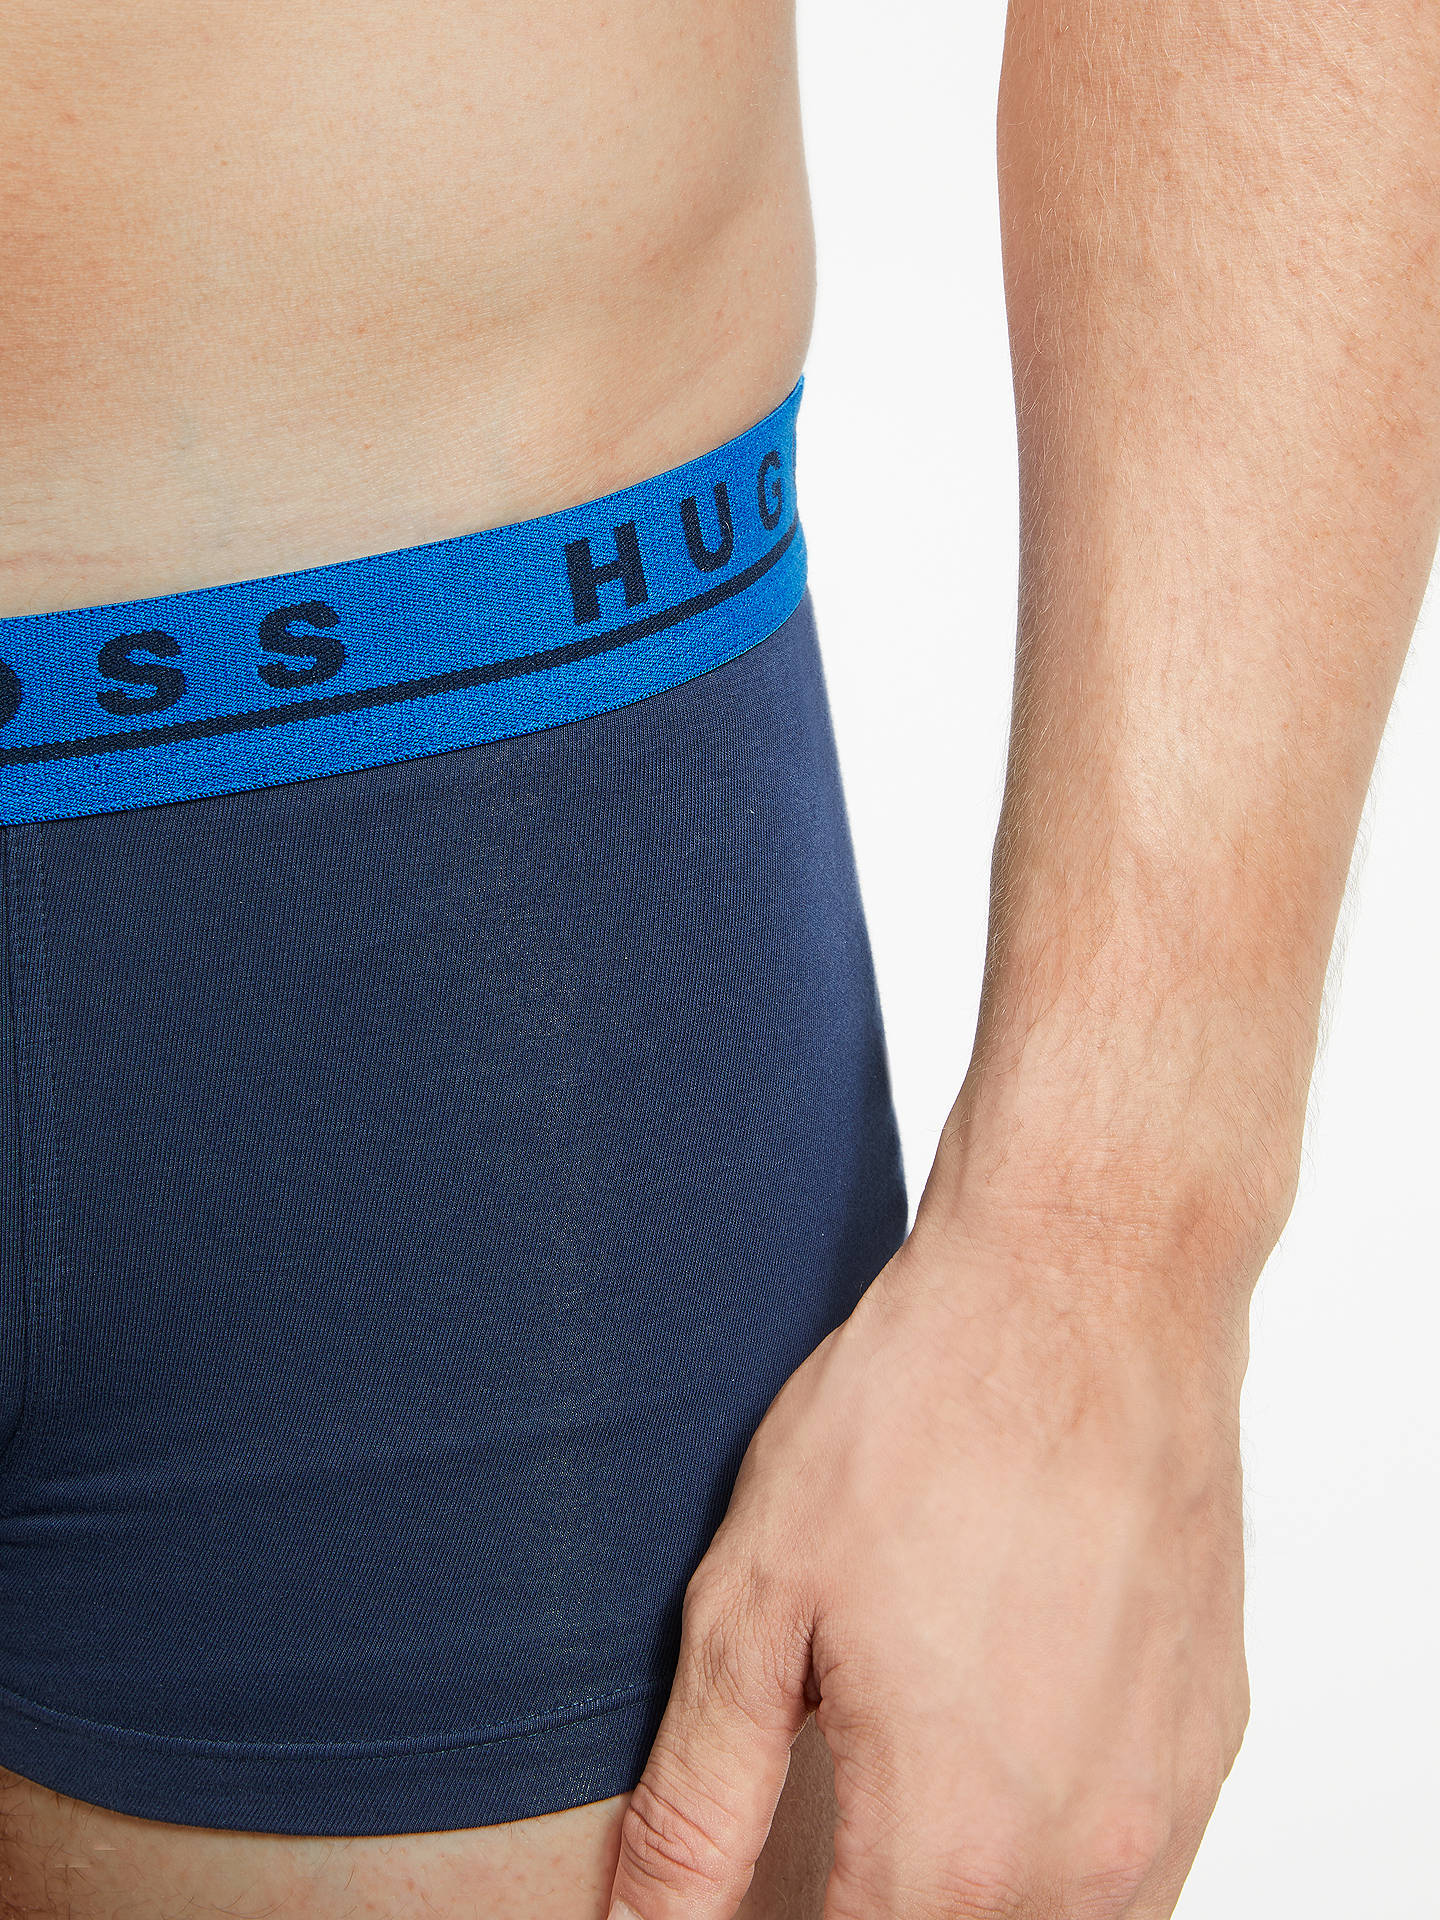 Buy BOSS Plain Contrast Waistband Trunks, Pack of 3, Navy/Blue/Yellow, M Online at johnlewis.com